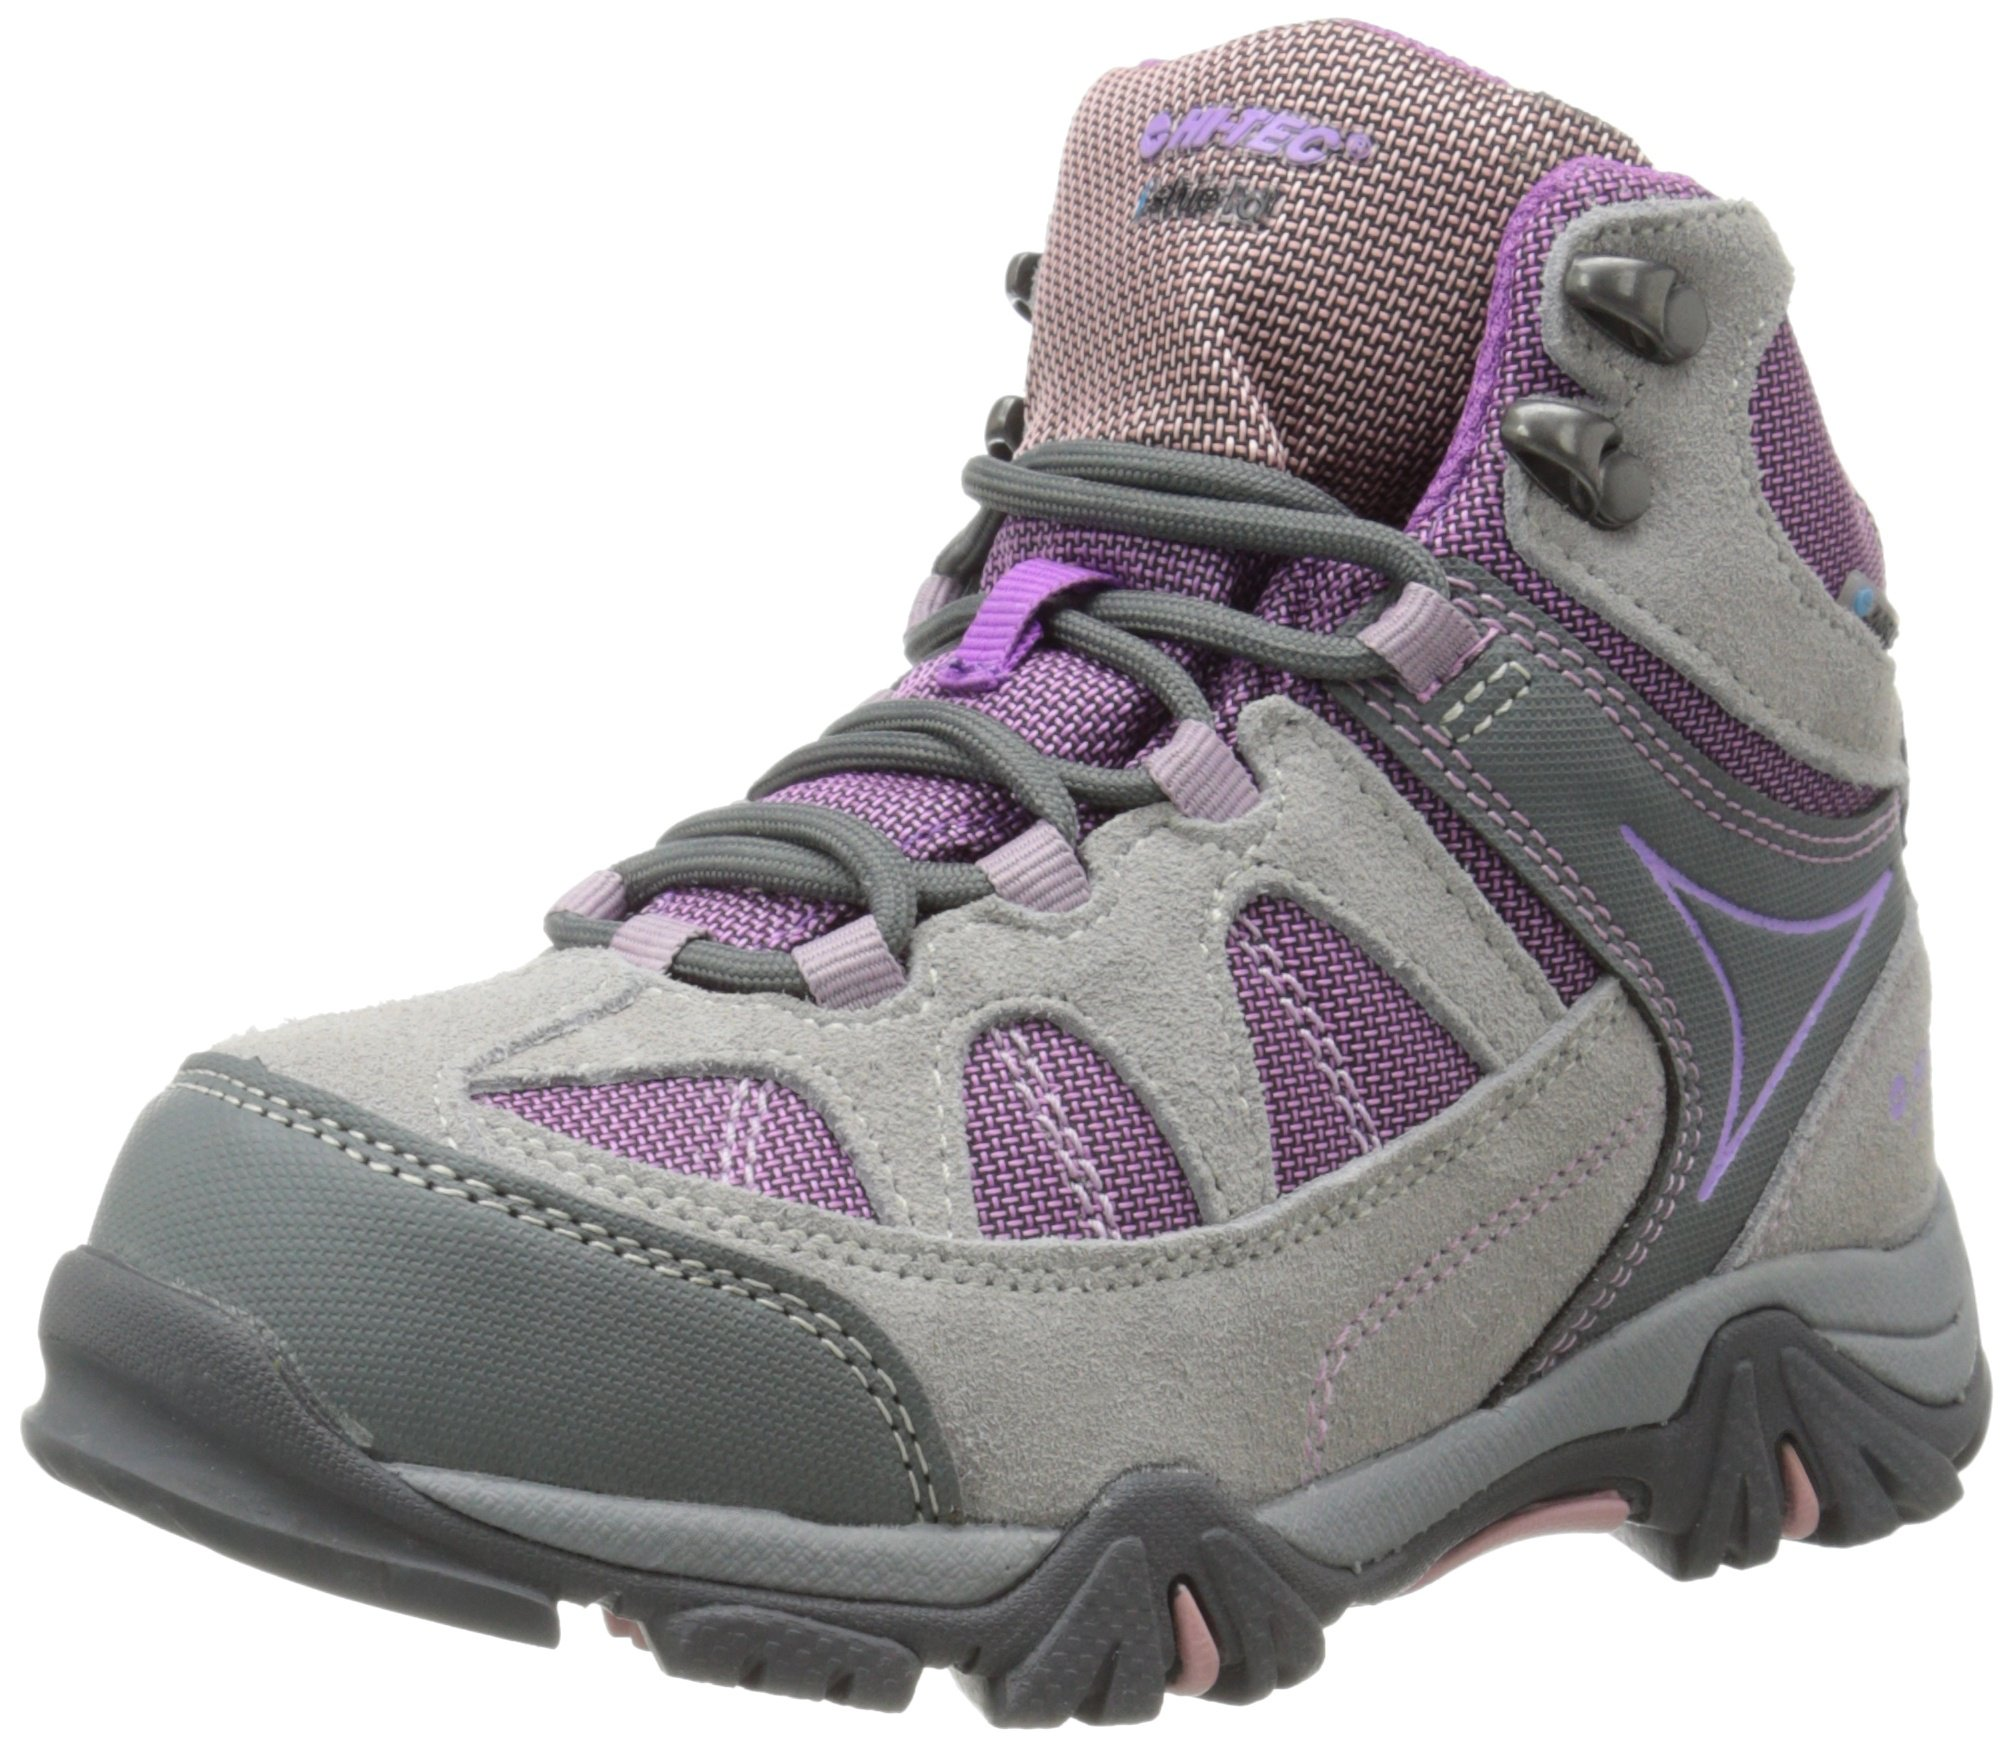 Hi-Tec Altitude Lite I Waterproof JR Hiking Boot (Toddler/Little Kid/Big Kid),Warm Grey/Orchid/Horizon,11 M US Little Kid